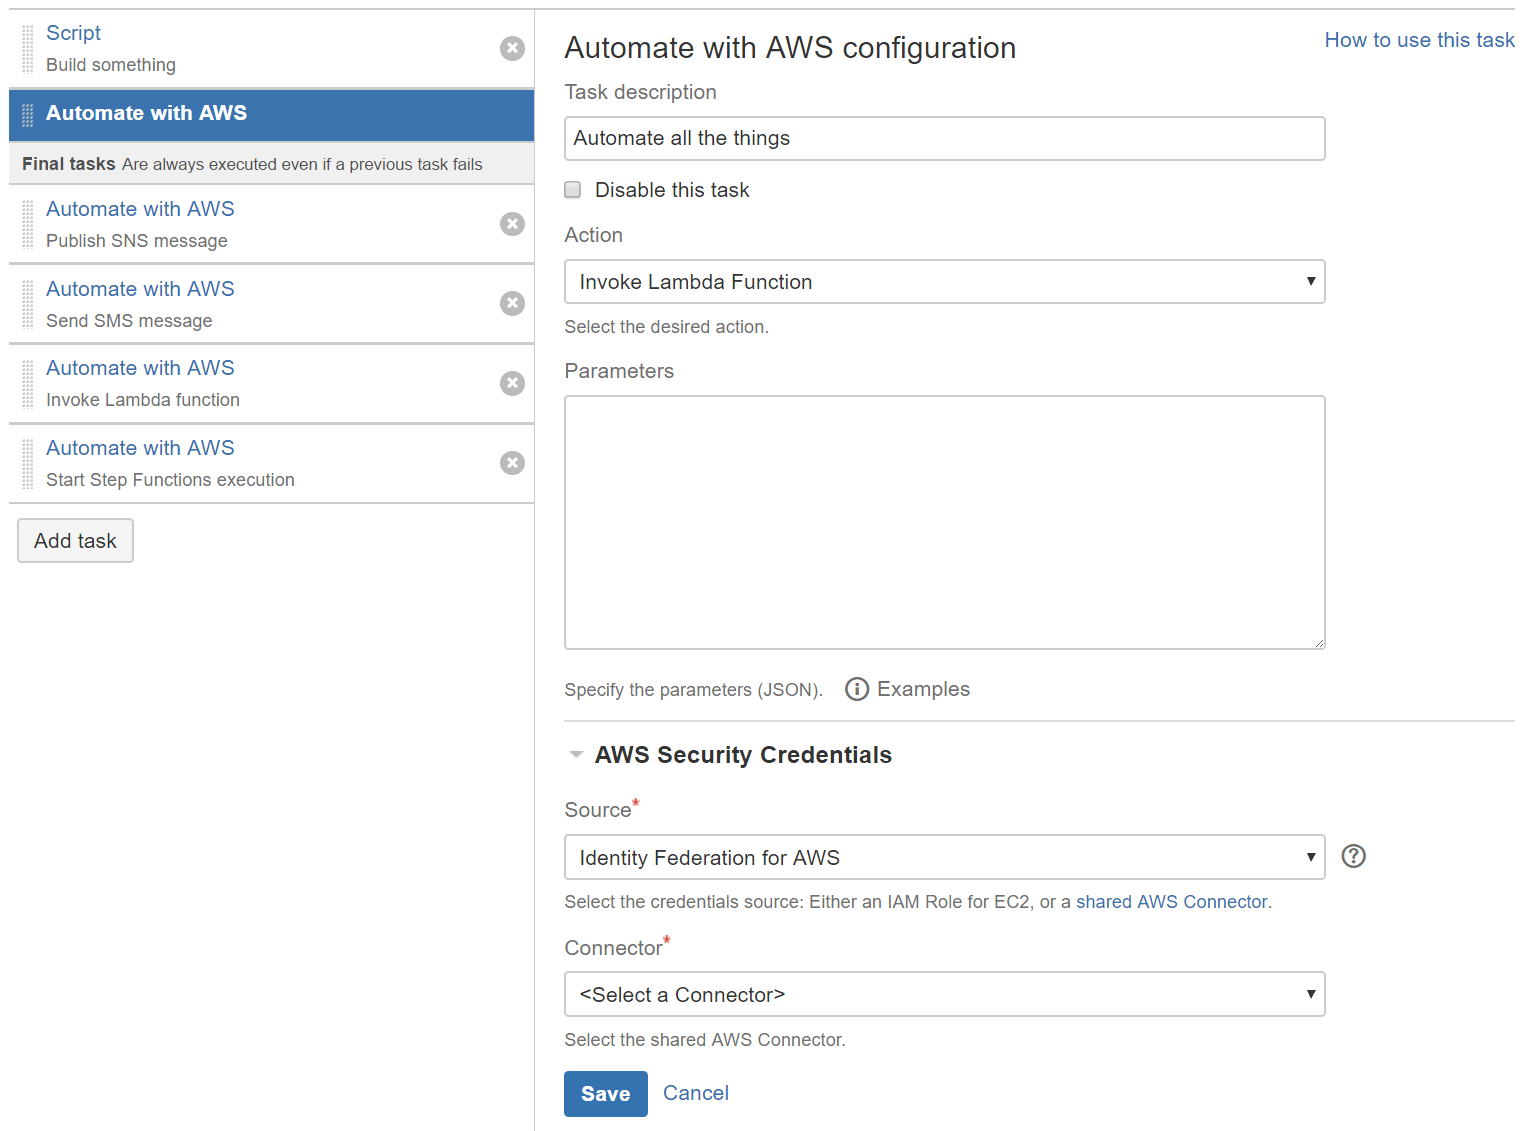 Automate with AWS task